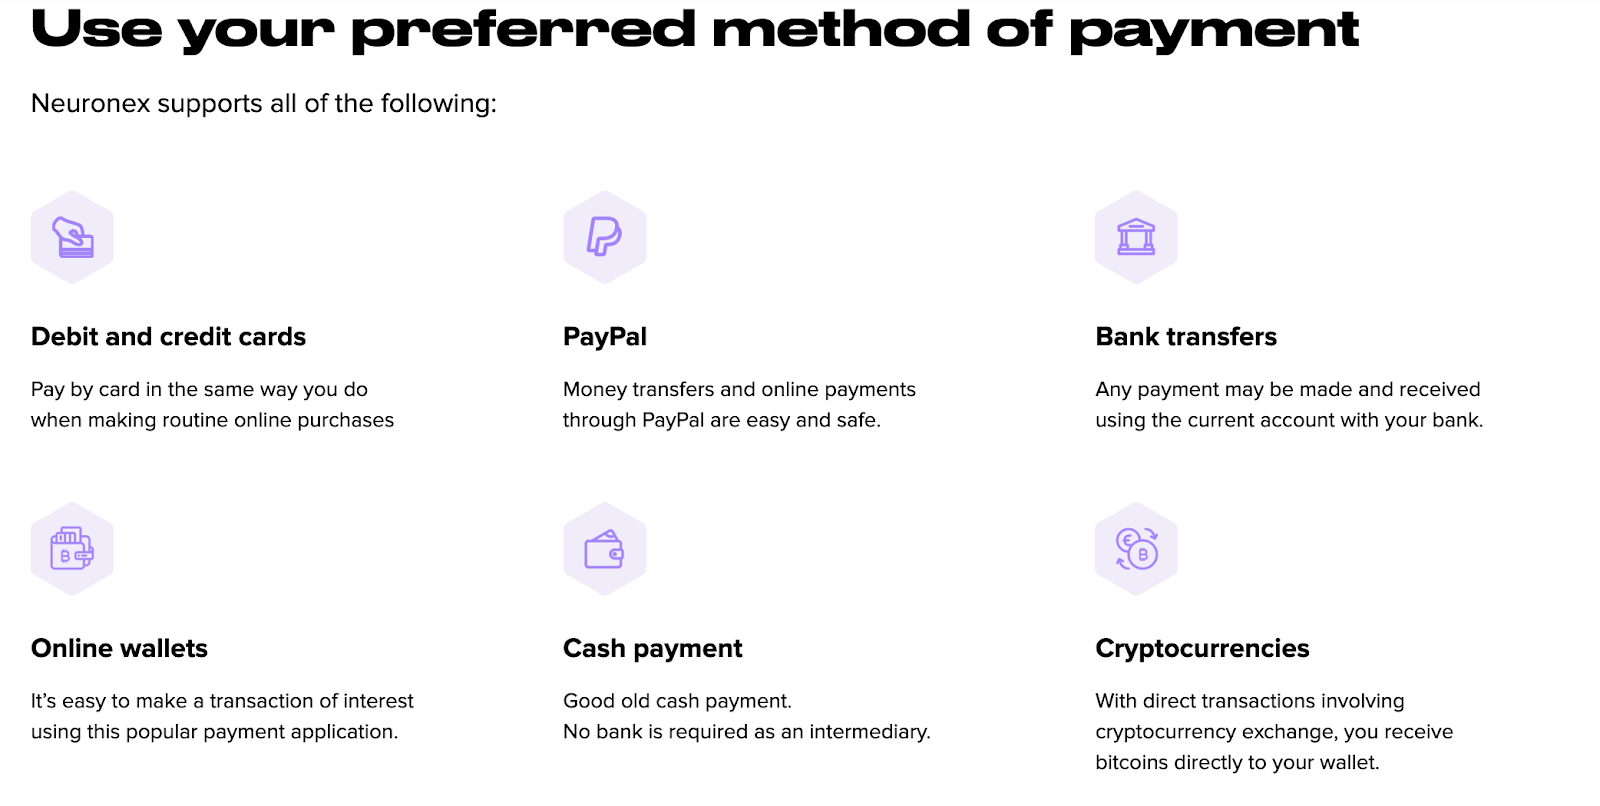 Payment Solutions on NeuronEx